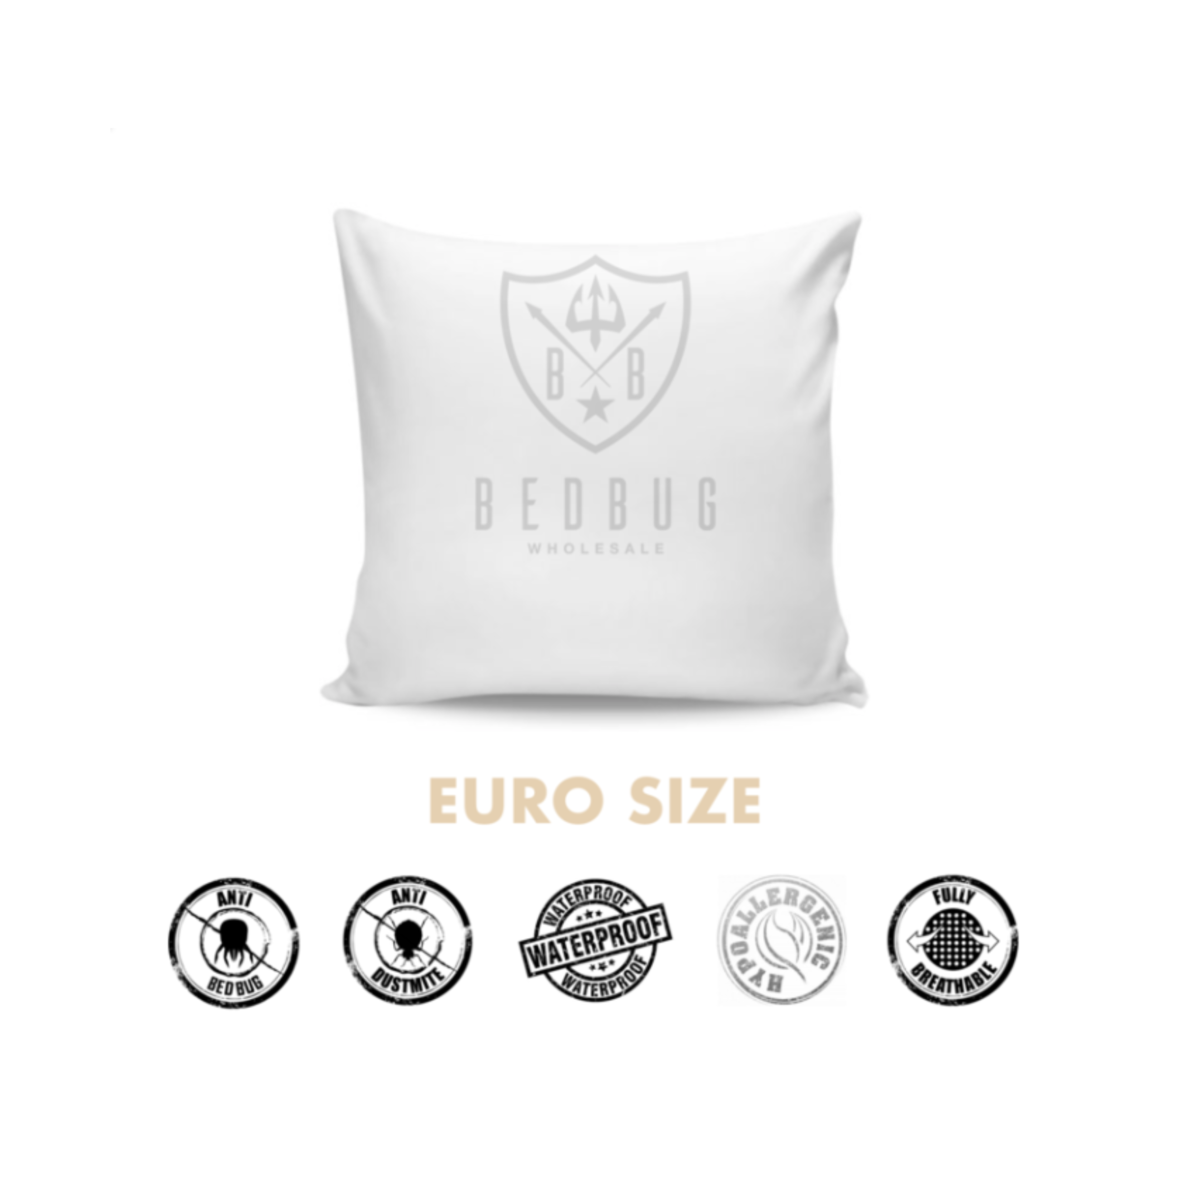 Euro Size Allergy, Dust Mite, Bed Bug Pillow Cover